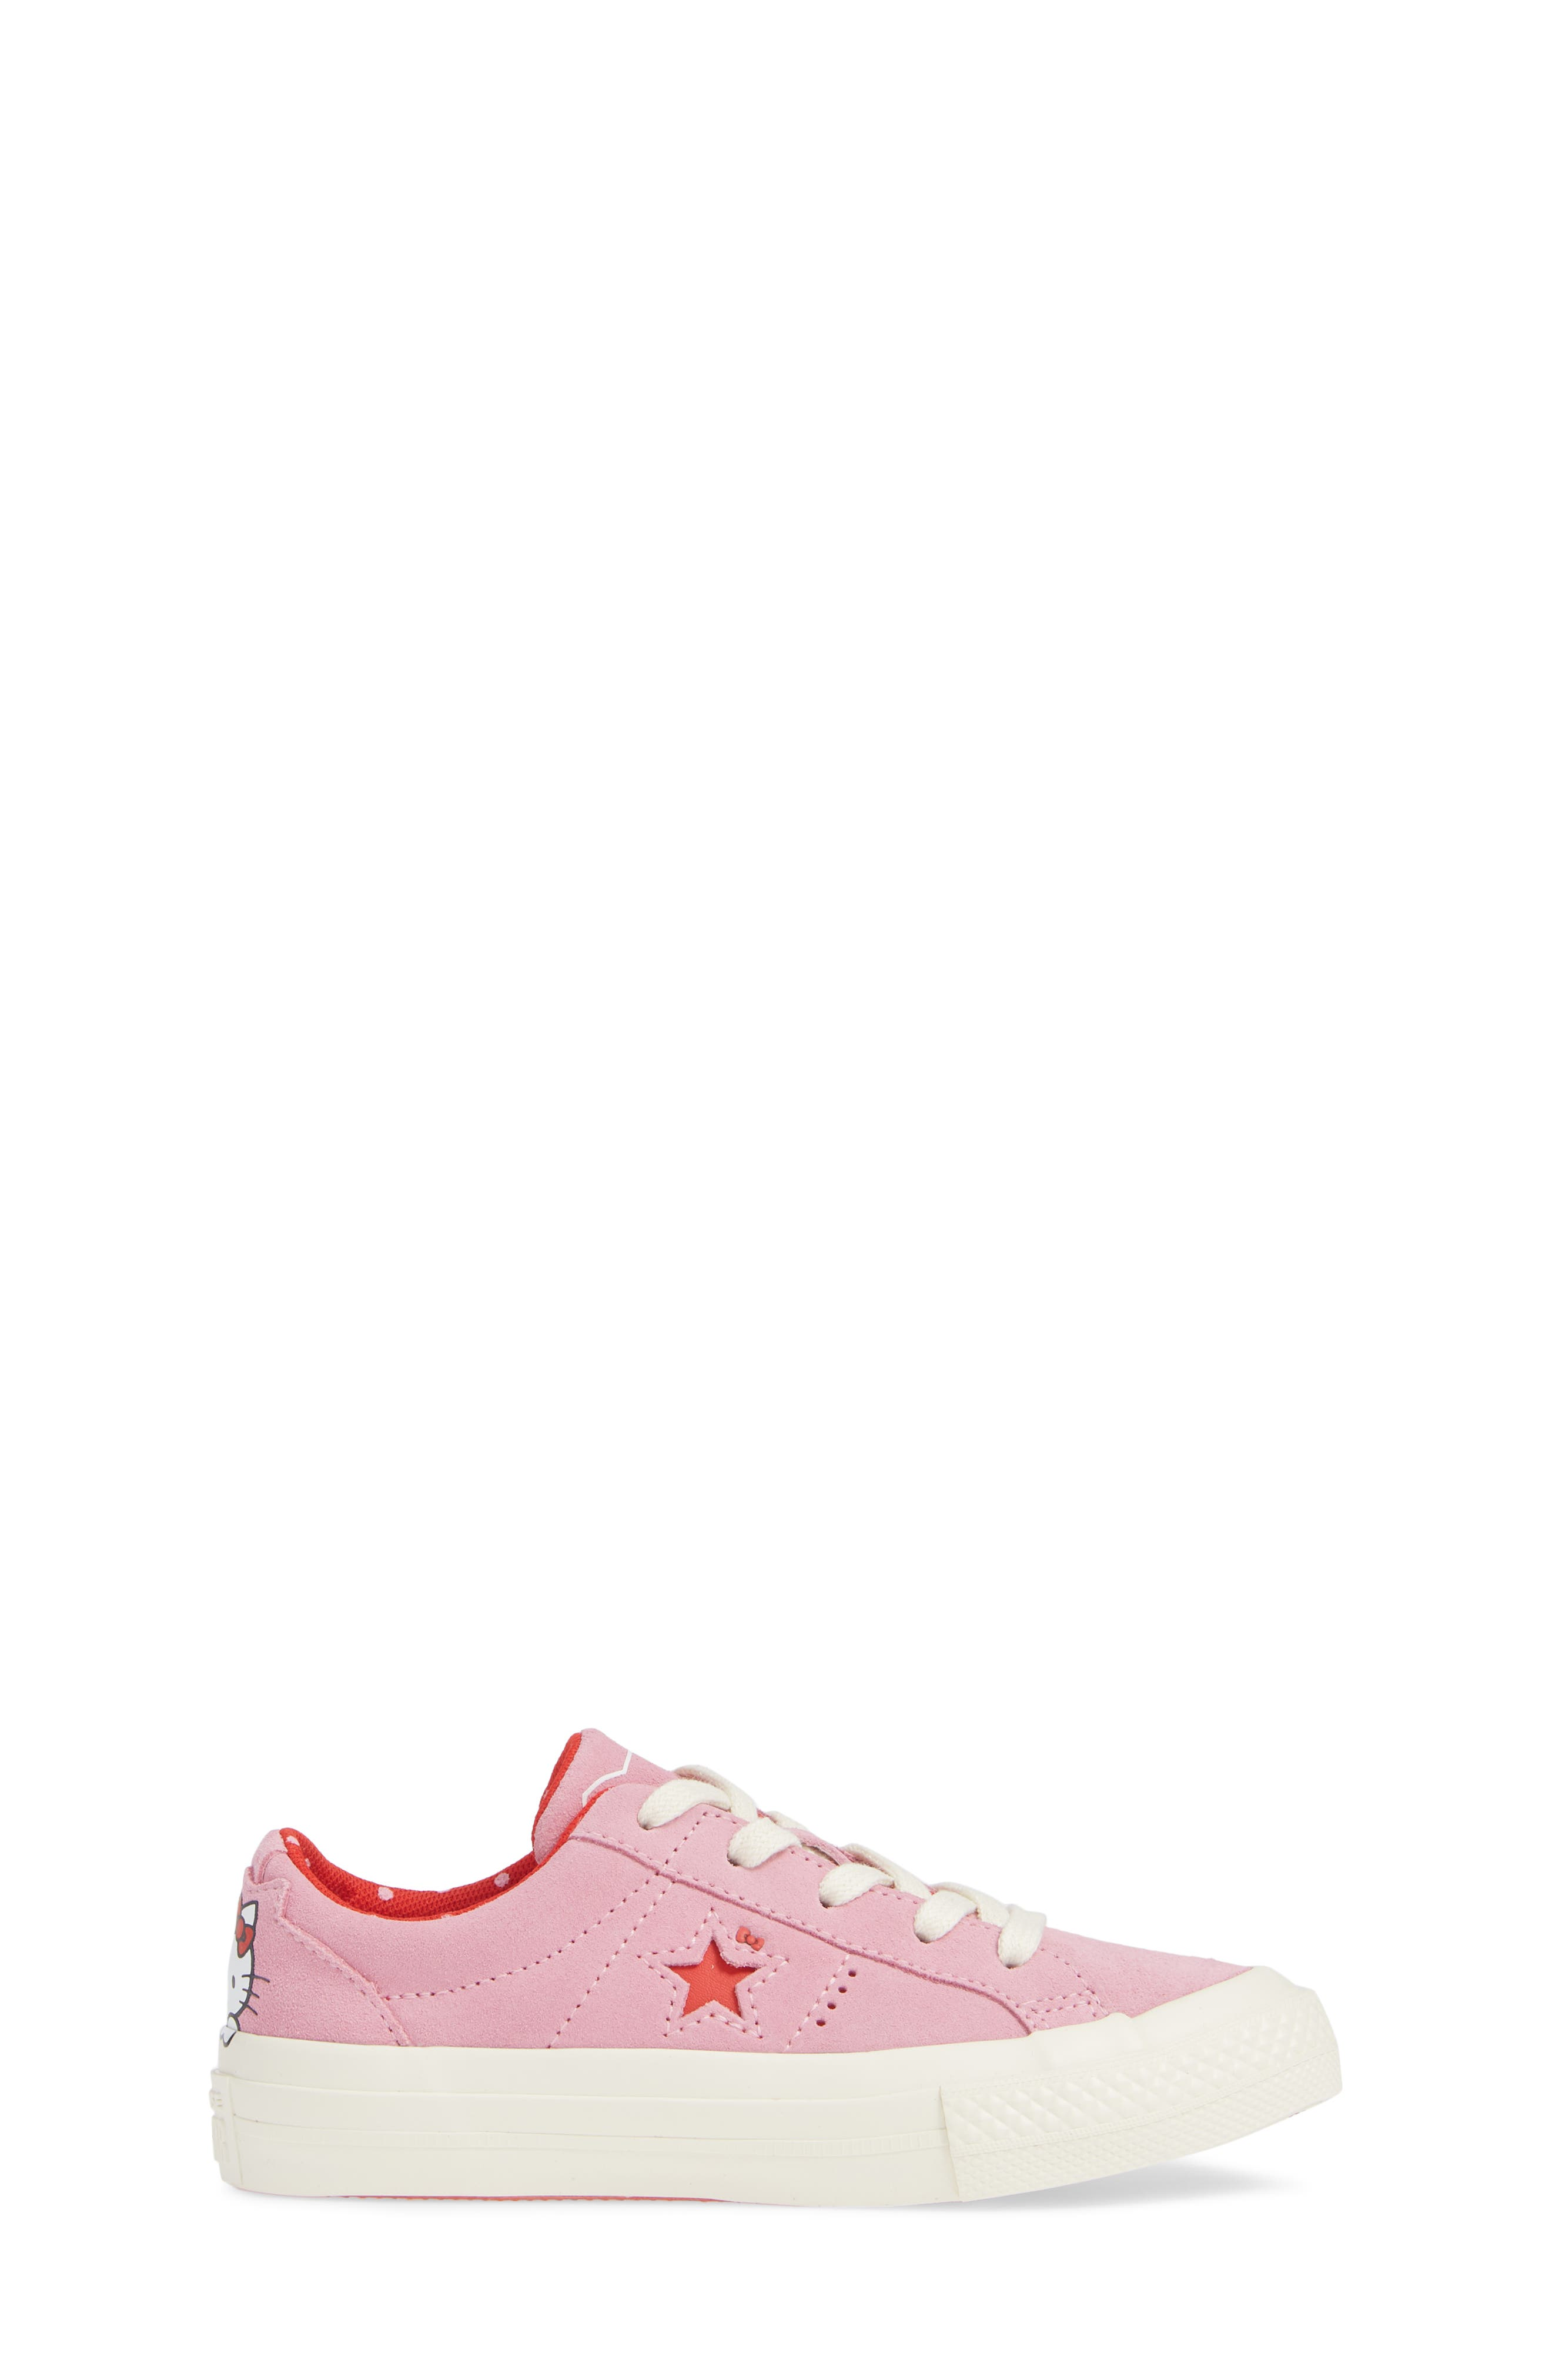 One Star Hello Kitty<sup>®</sup> Sneaker,                             Alternate thumbnail 3, color,                             PINK PRISM